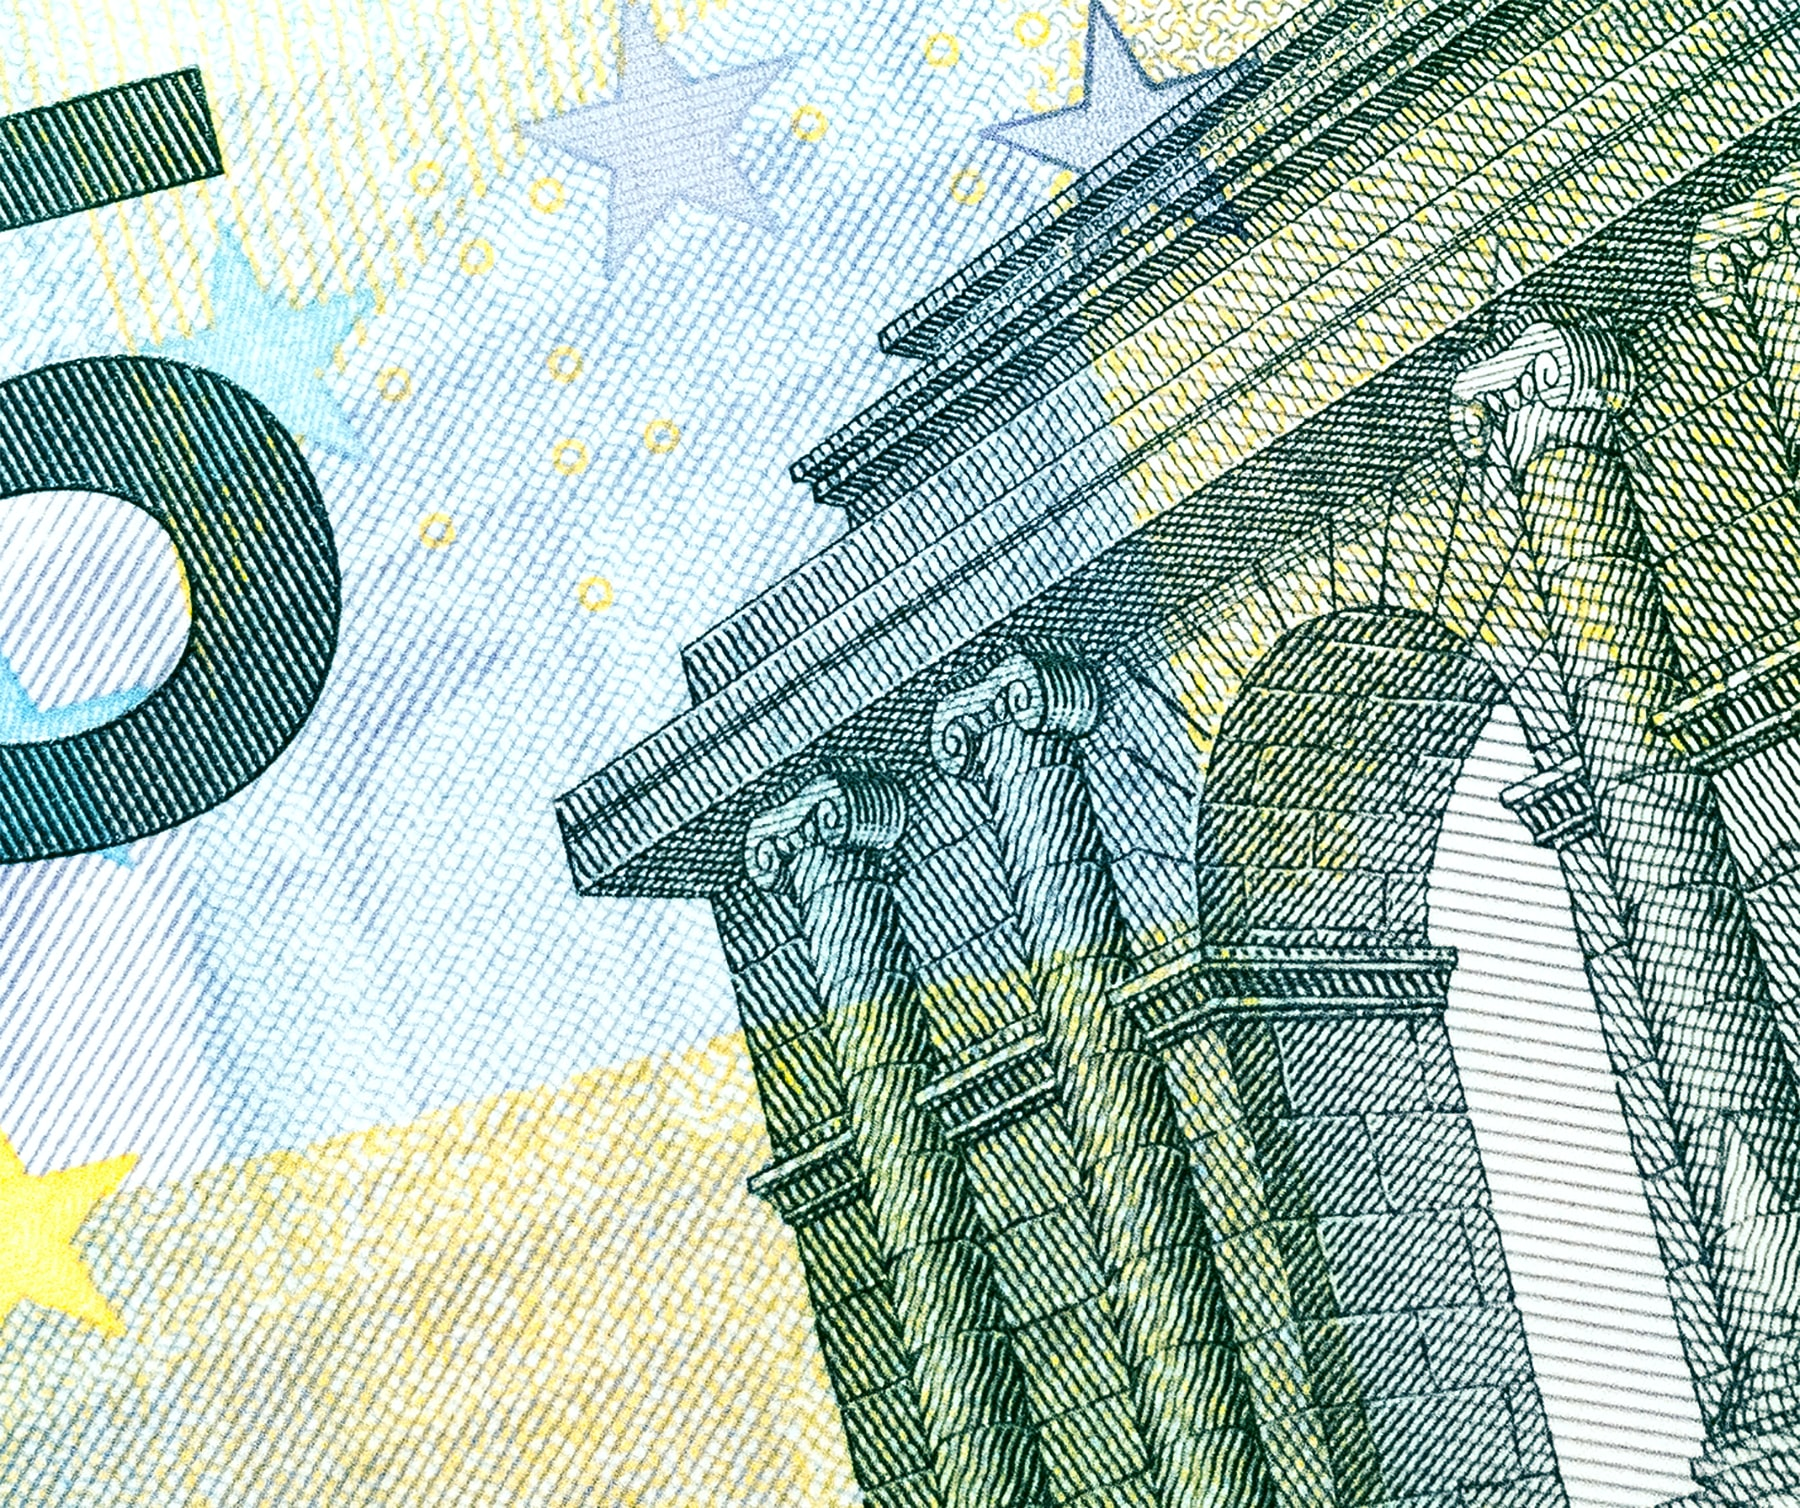 A detailed close-up of a classical building on a five euro note